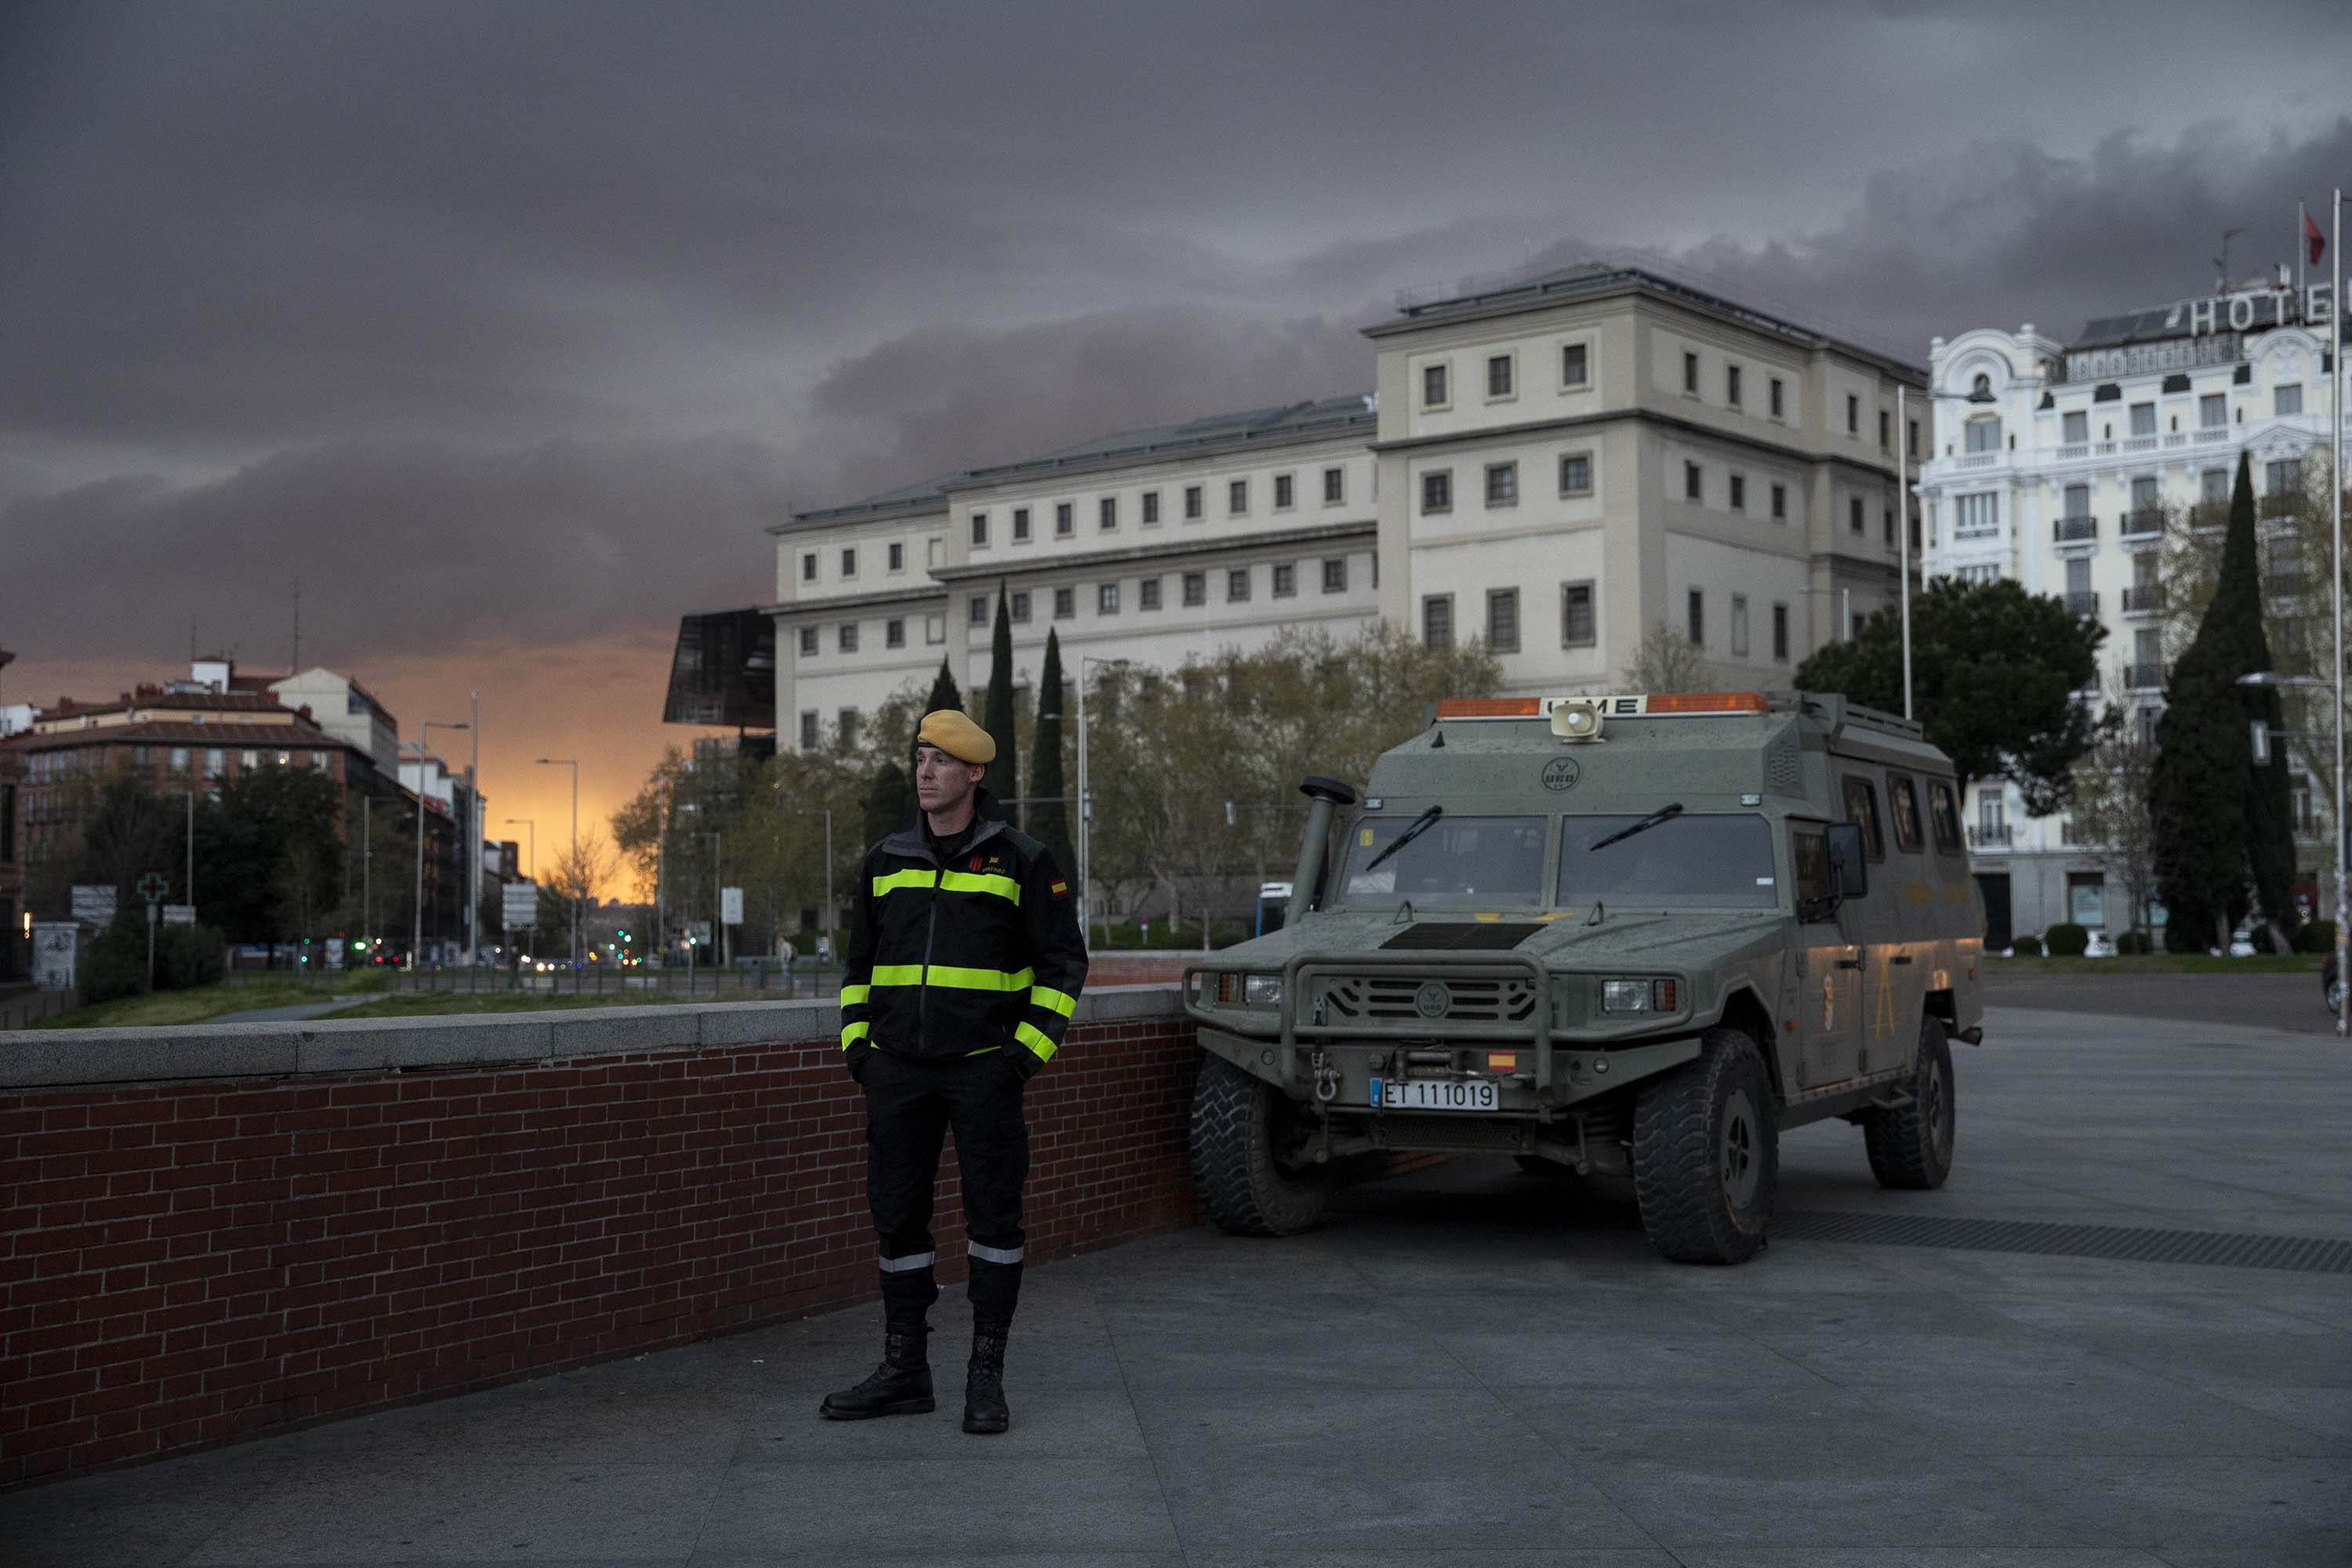 A member of Spanish Military Emergency Unit (UME) stands guard outside a train station in Madrid, Spain, on March 15.